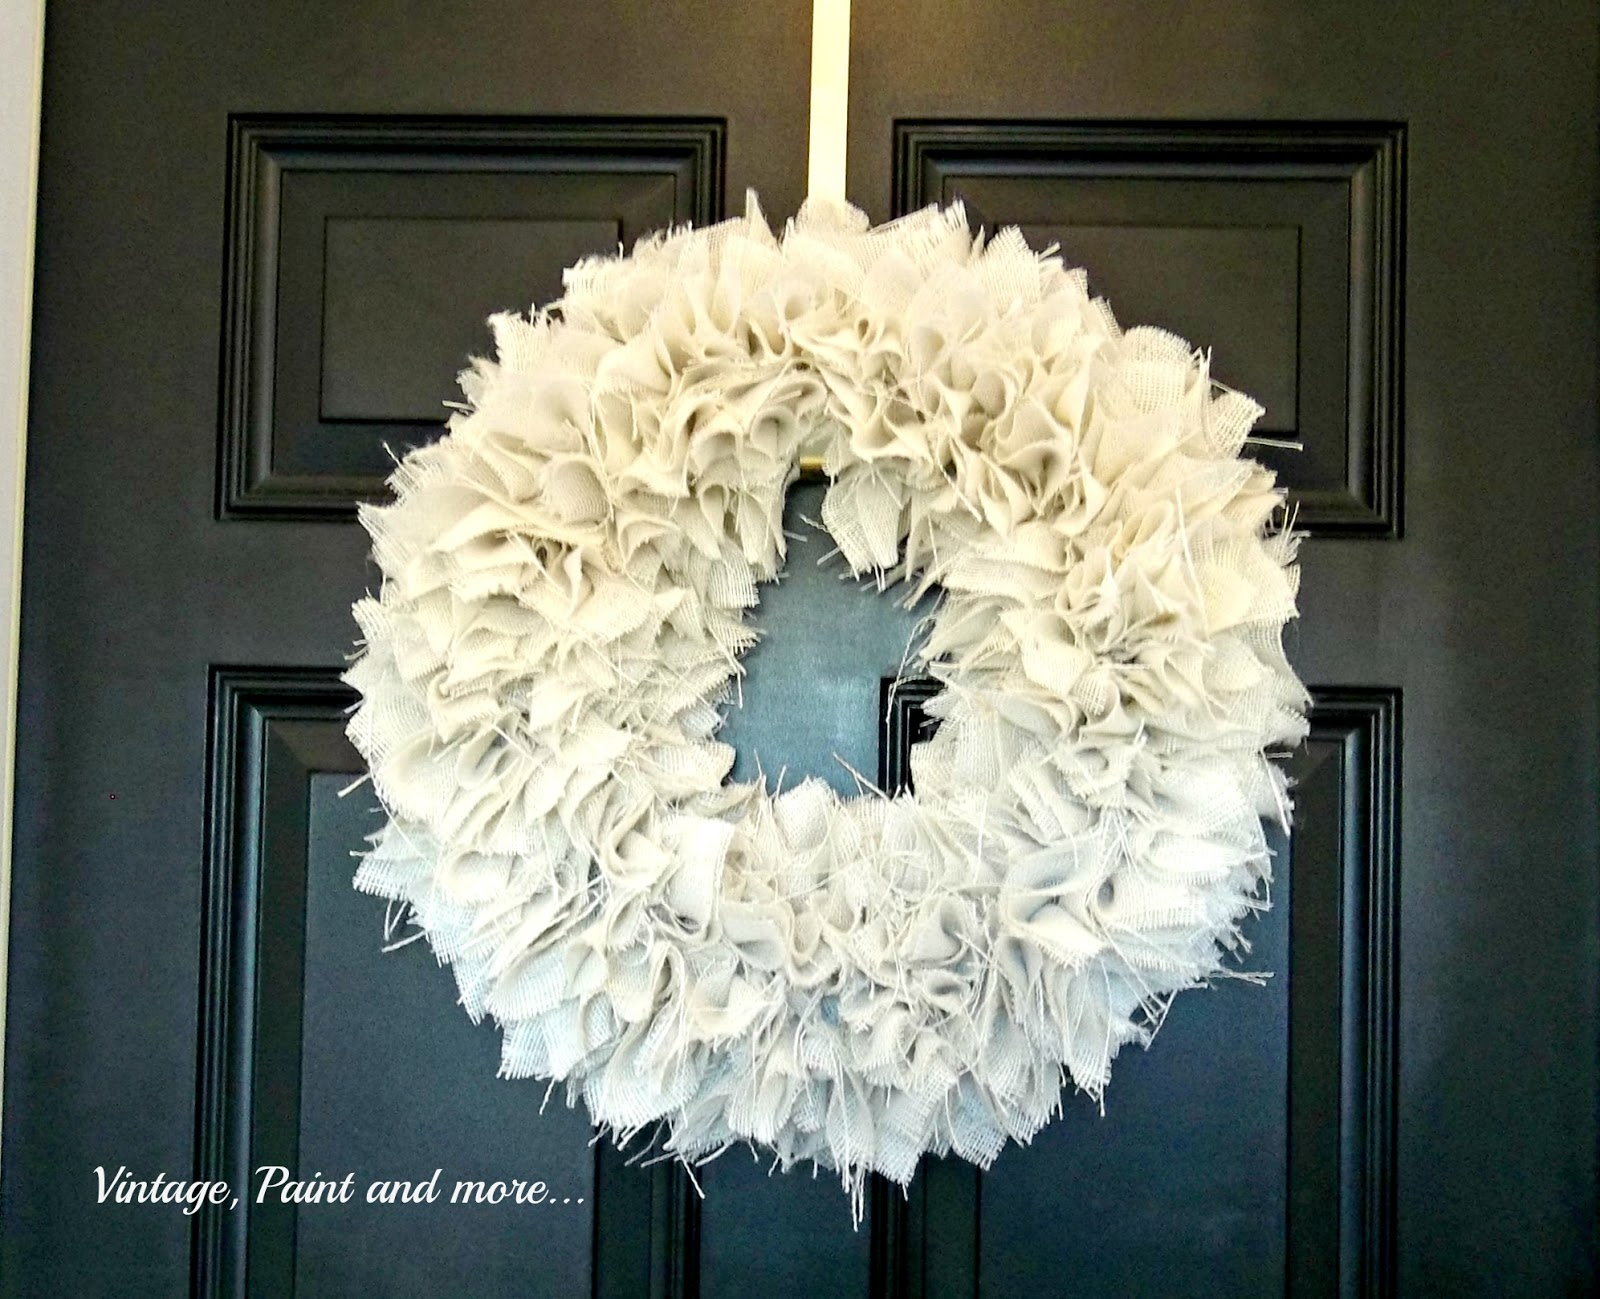 Vintage, Paint and more... a textured wreath for fall made from white burlap